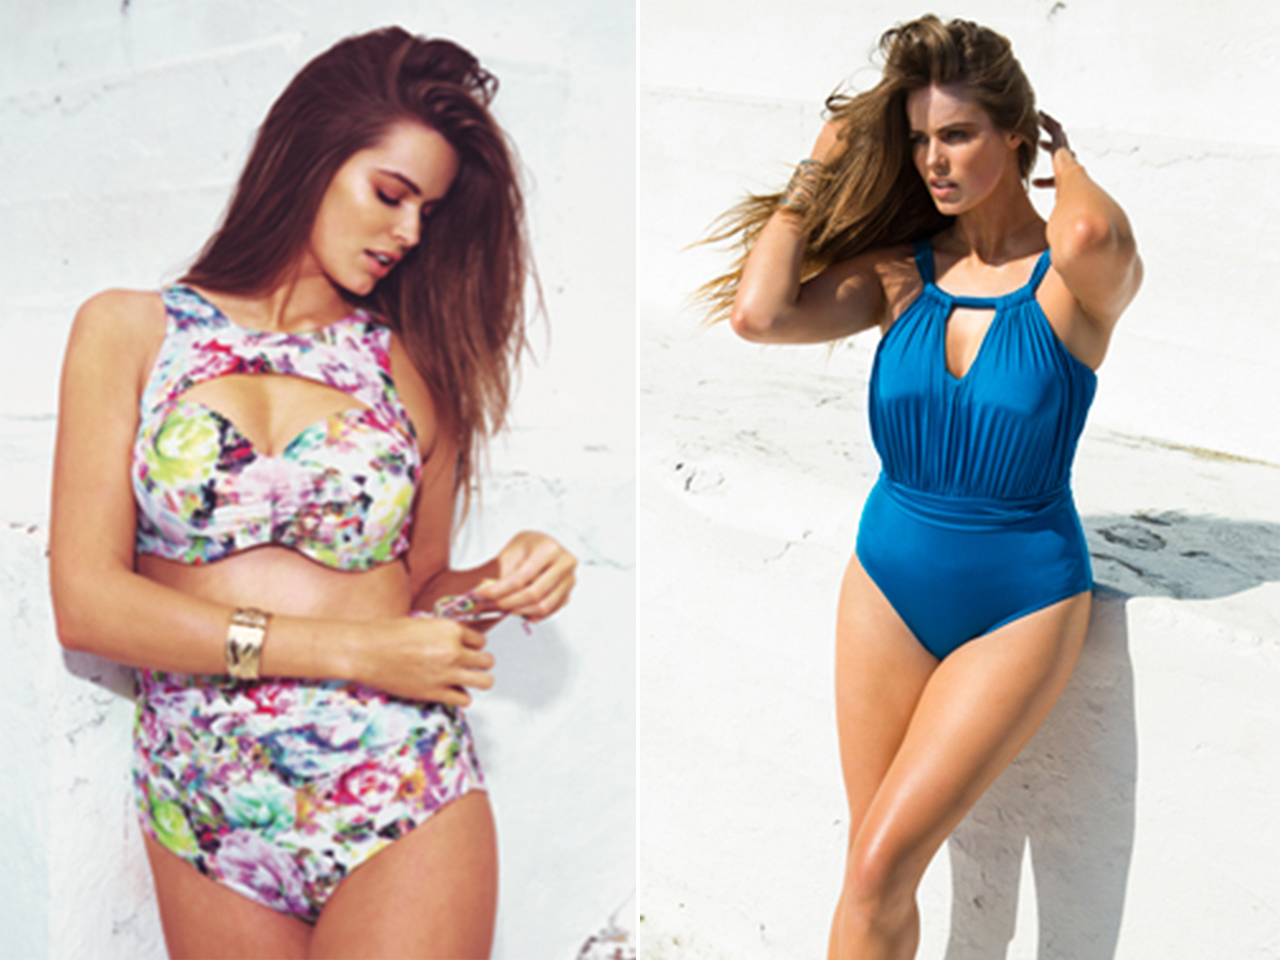 Plus Sized Models New Swimwear Line Makes Waves